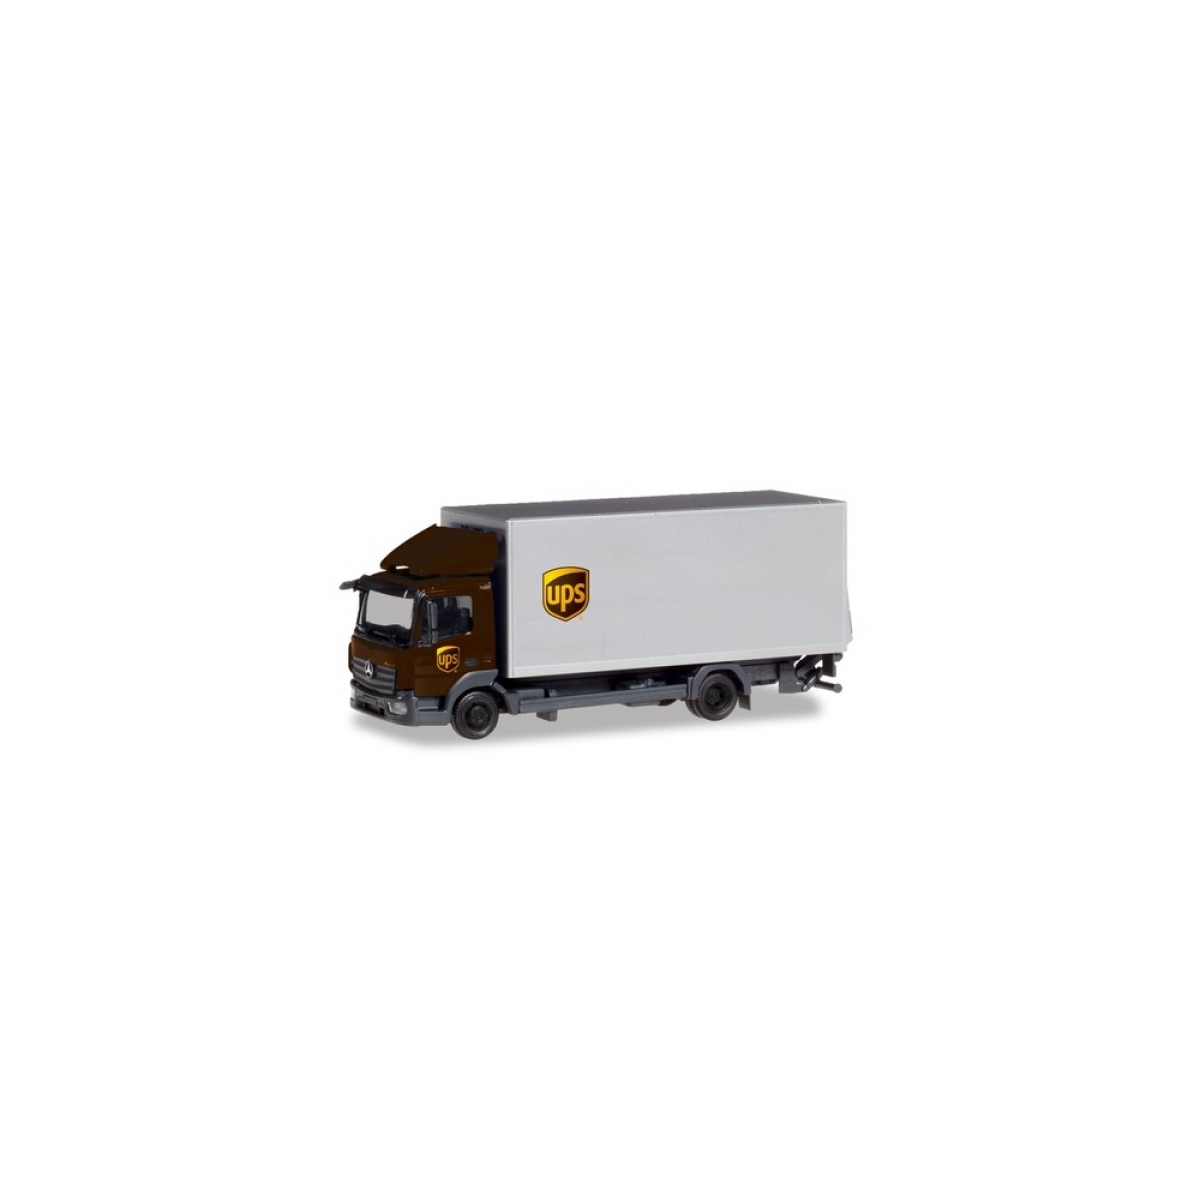 Herpa 310208 MB Atego`13 Koffer-LKW mit Ladebordwand UPS